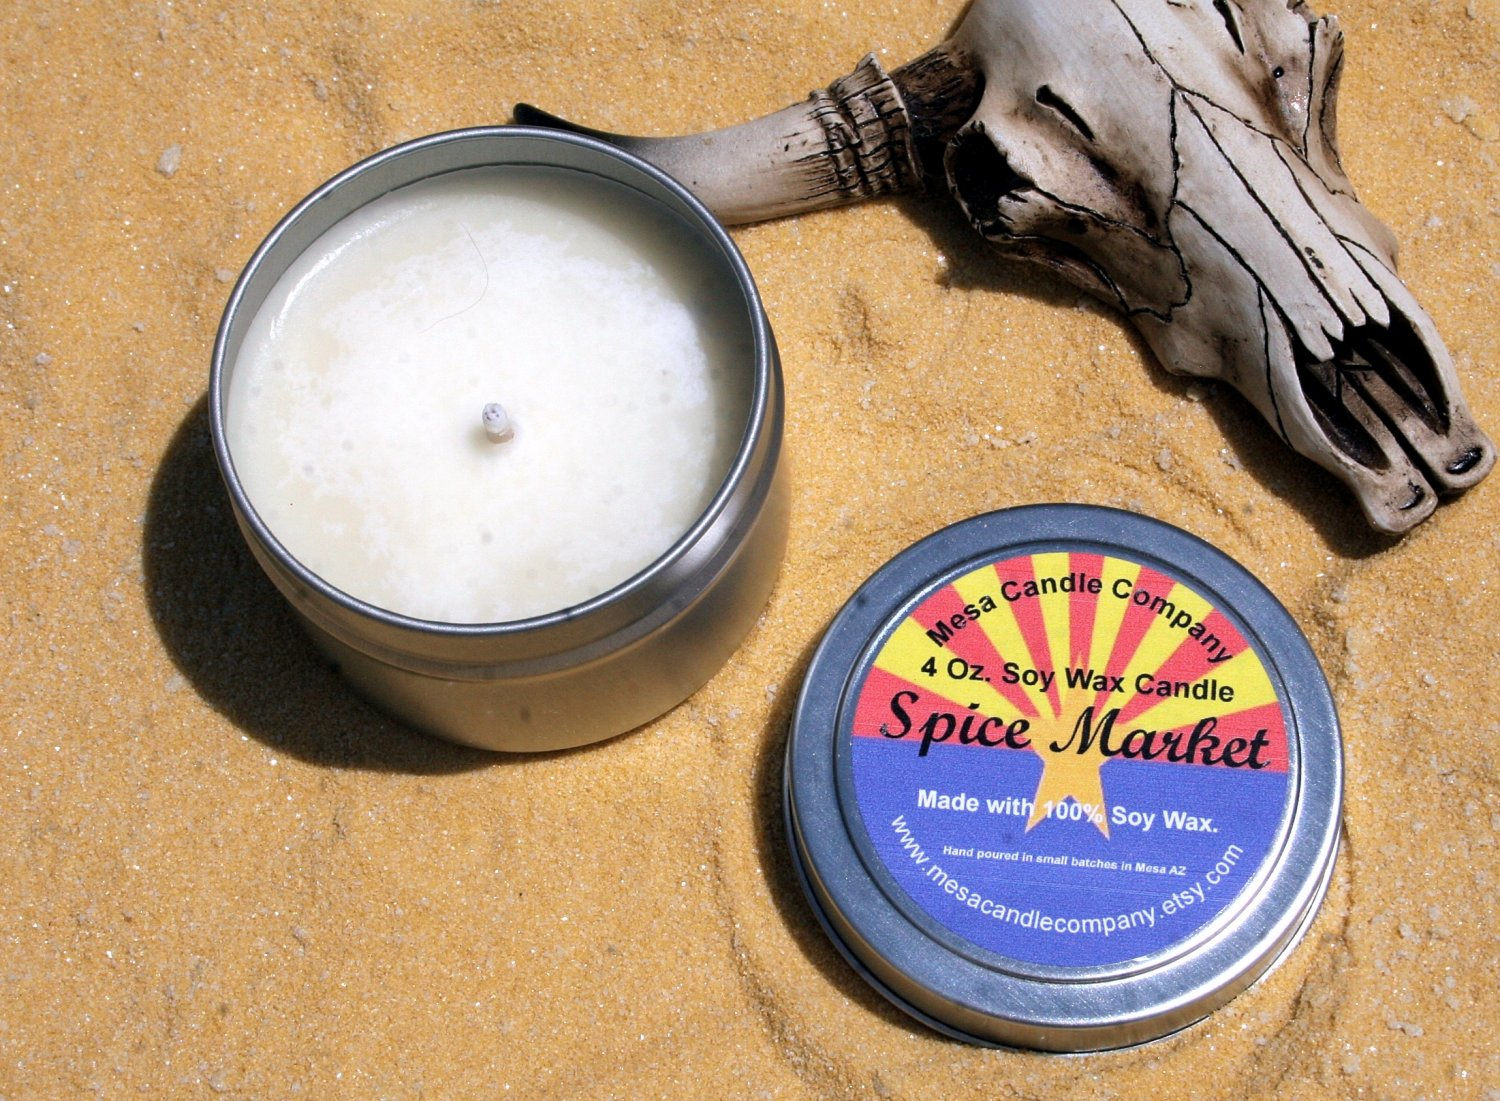 Spice Market Scented Soy Candle 4 Oz.